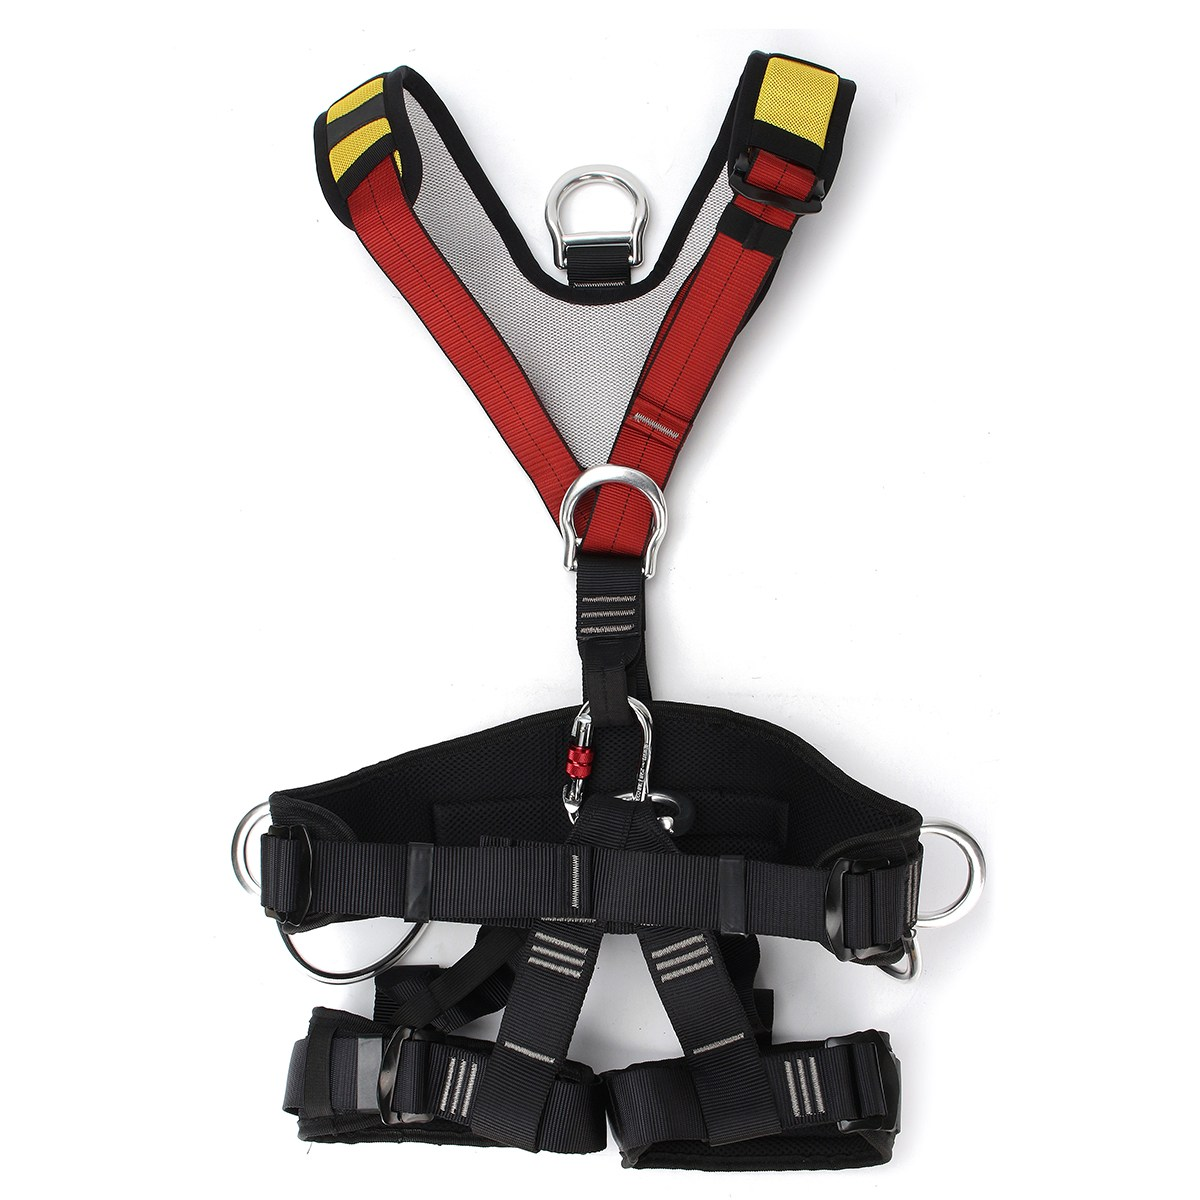 Professional Outdoor Rescue Rock Climbing Sitting Bust Belt Safety Seat Rappelling Harness Full Body Rescue Climbing Belt multifunctional professional handle pulley roller gear outdoor rock climbing tyrolean traverse crossing weight carriage fit